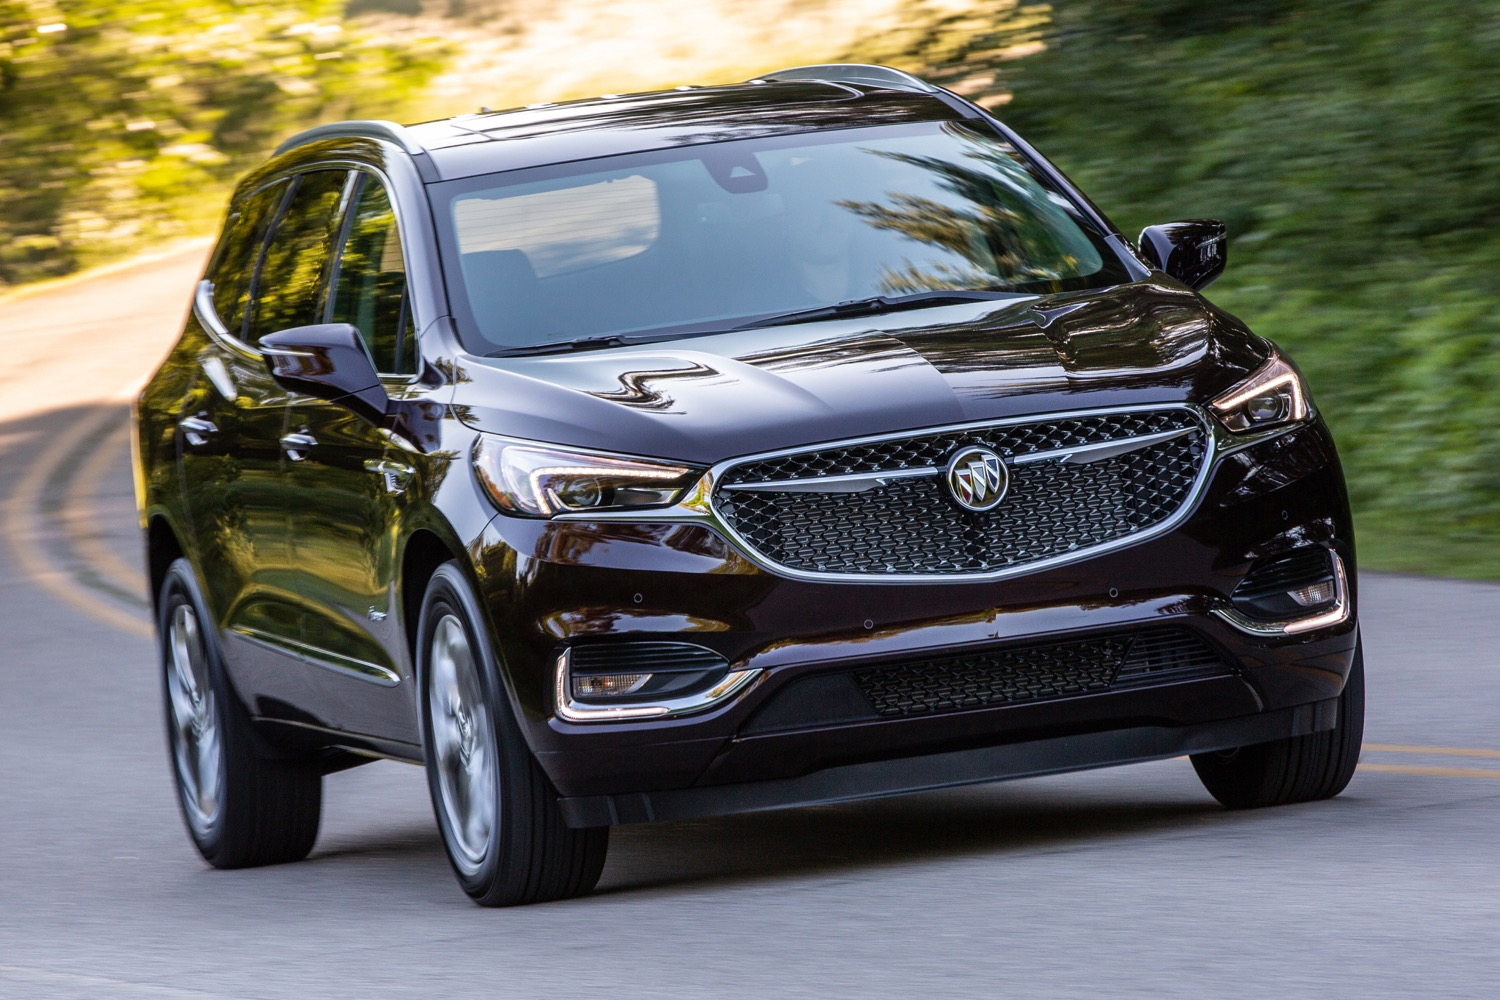 Buick Enclave Discount Totals $4,750 In February 2020 | Gm New 2022 Buick Enclave Avenir Engine, Specs, Lease